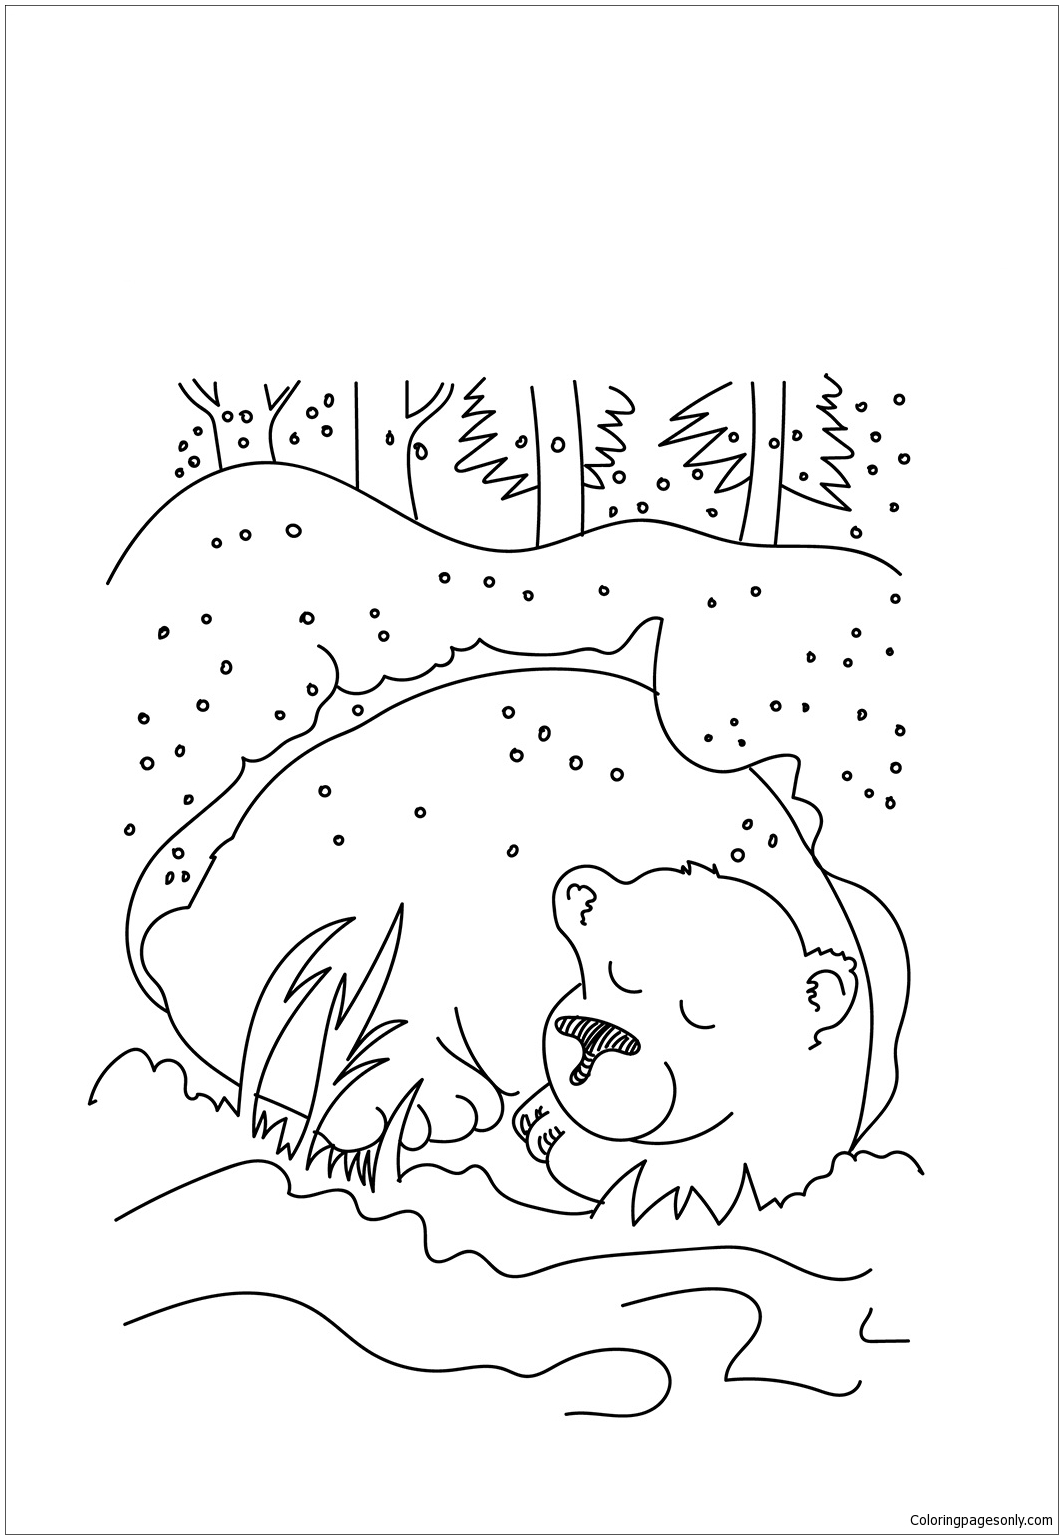 Cave Clipart Coloring Page Cave Coloring Page Transparent